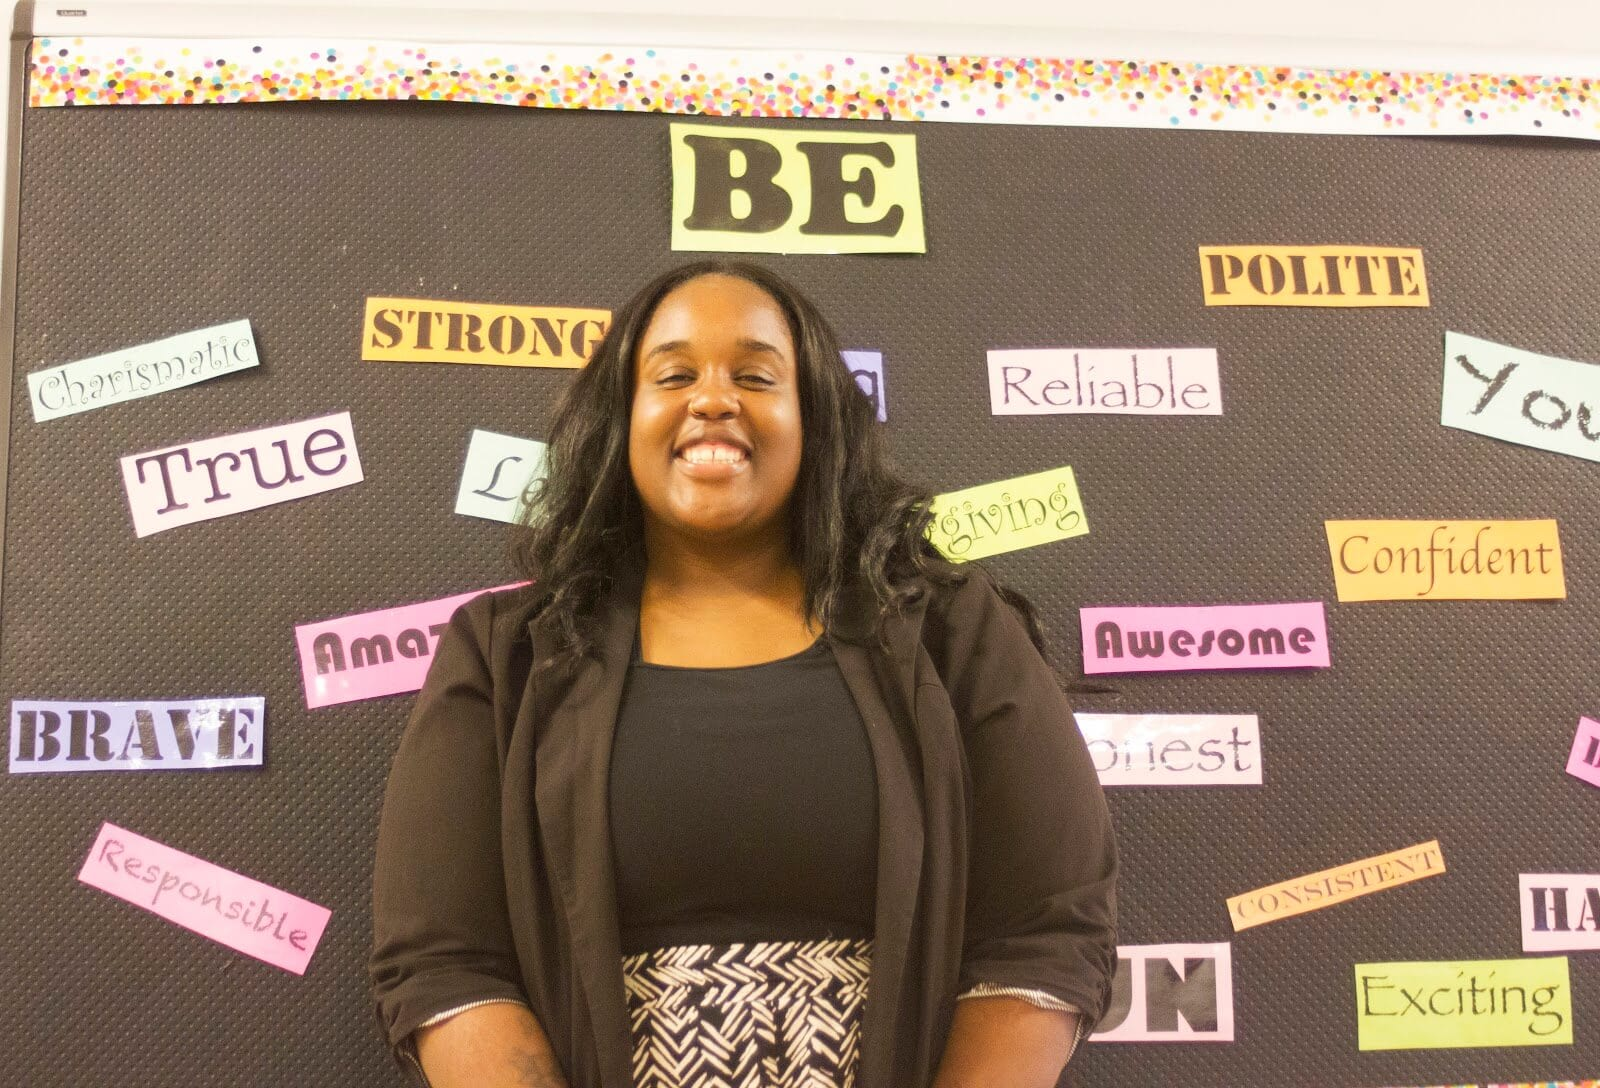 woman smiling in front of bulletin board with positive words